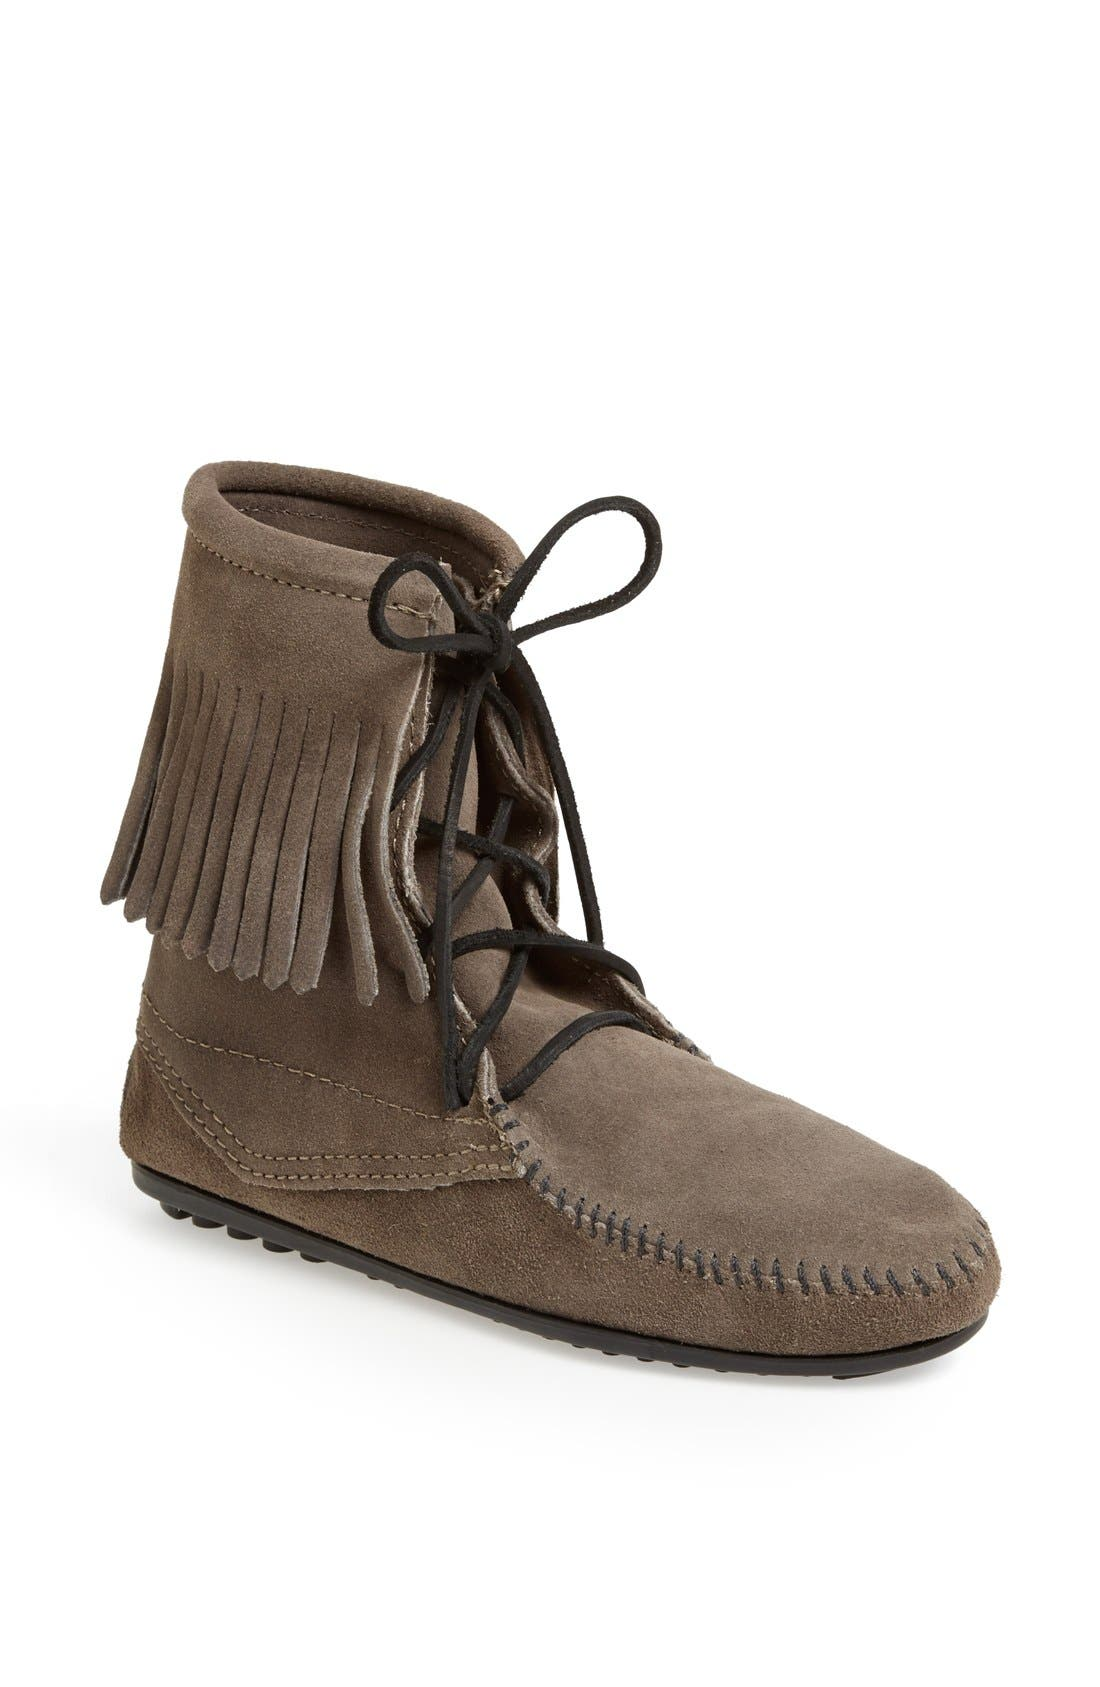 Alternate Image 1 Selected - Minnetonka 'Tramper' Fringed Suede Ankle Bootie